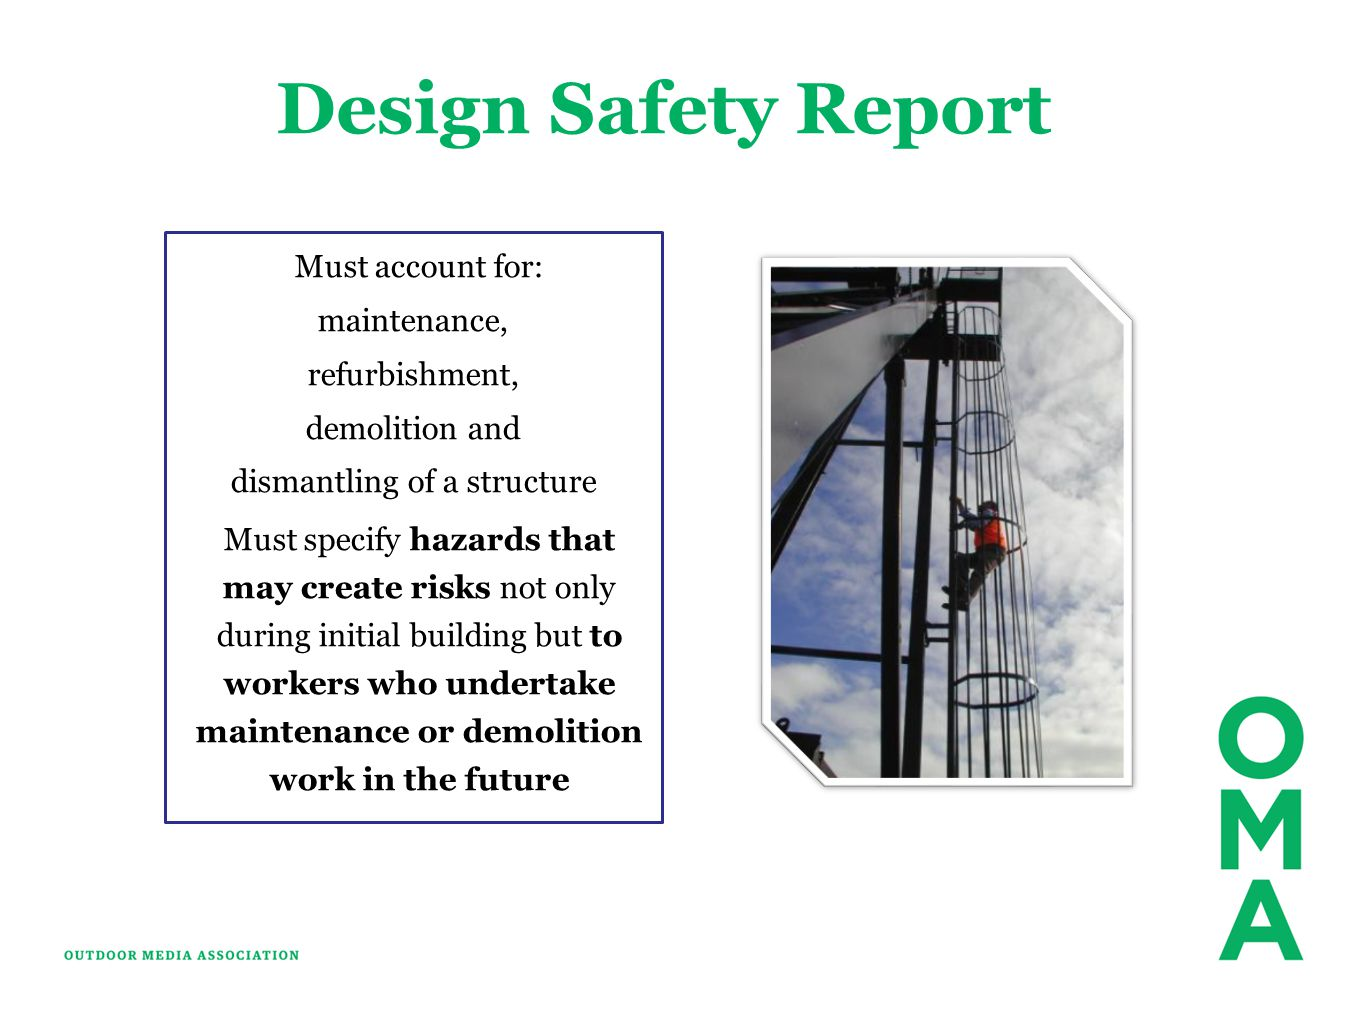 Design Safety Report Must account for: maintenance, refurbishment, demolition and dismantling of a structure Must specify hazards that may create risks not only during initial building but to workers who undertake maintenance or demolition work in the future